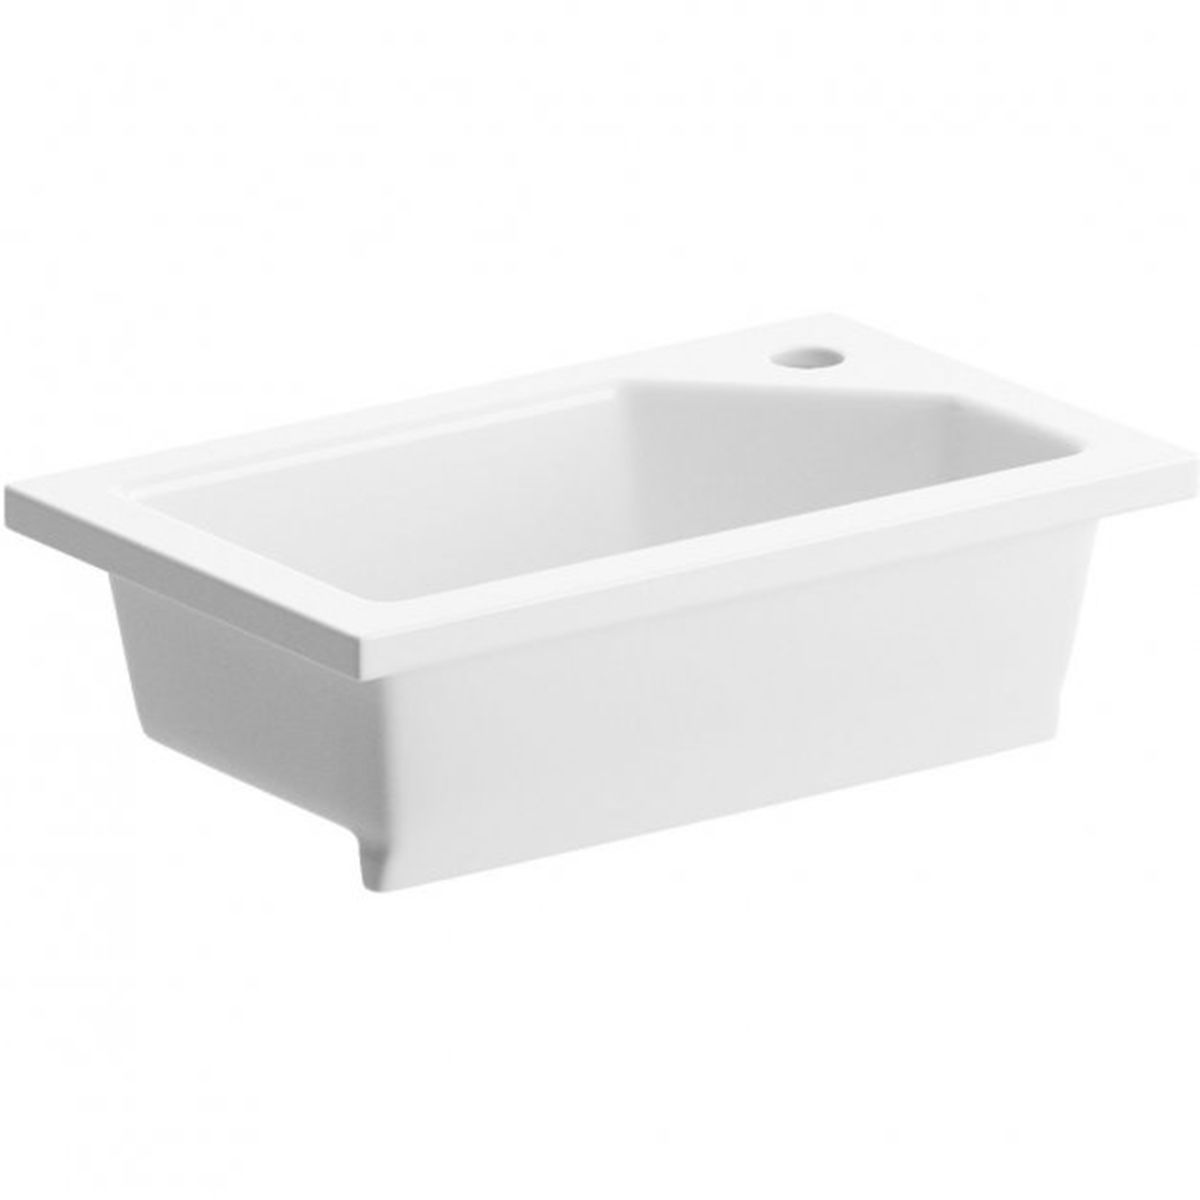 Bathrooms To Love White Compact Inset Basin 430 x 260mm